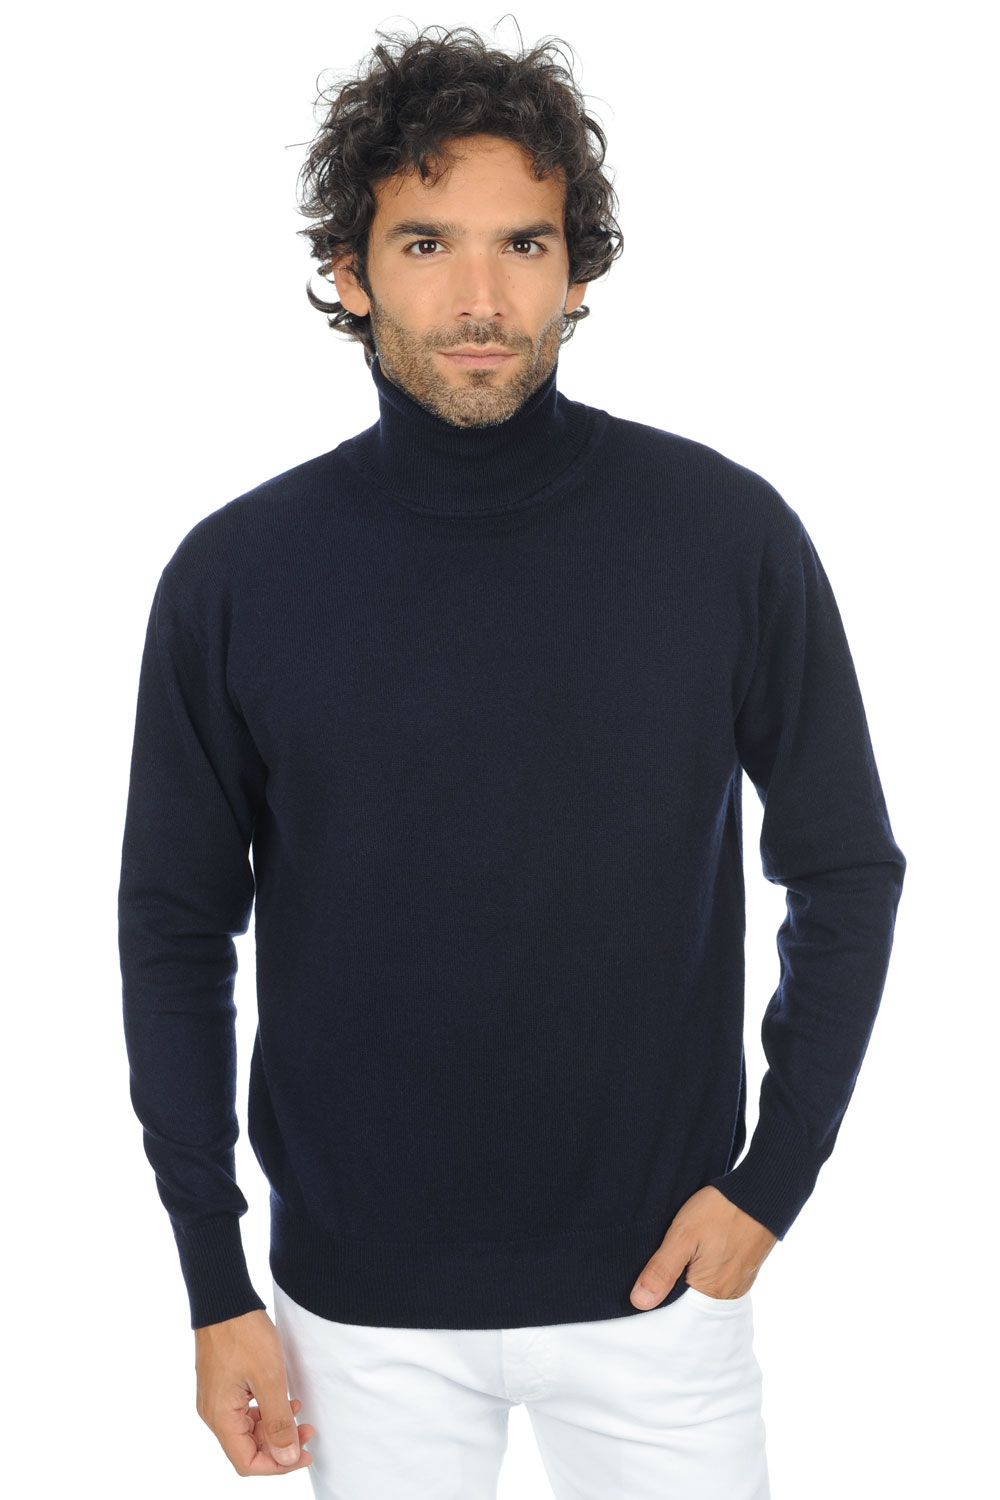 cashmere men polo necks edg premium premium navy l